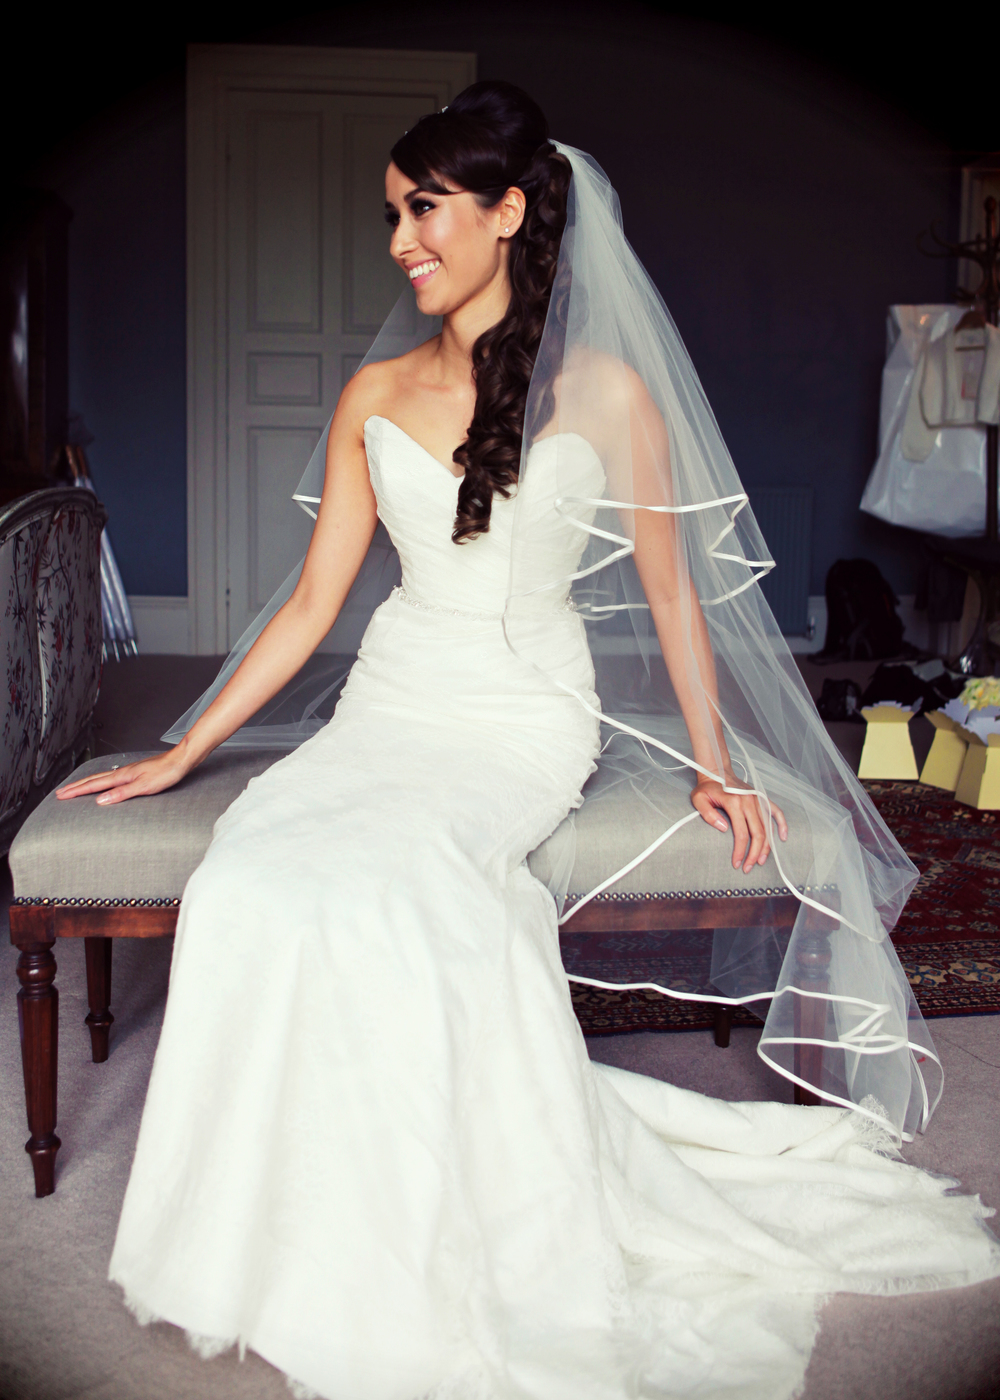 Long veil with hair styled over shoulder